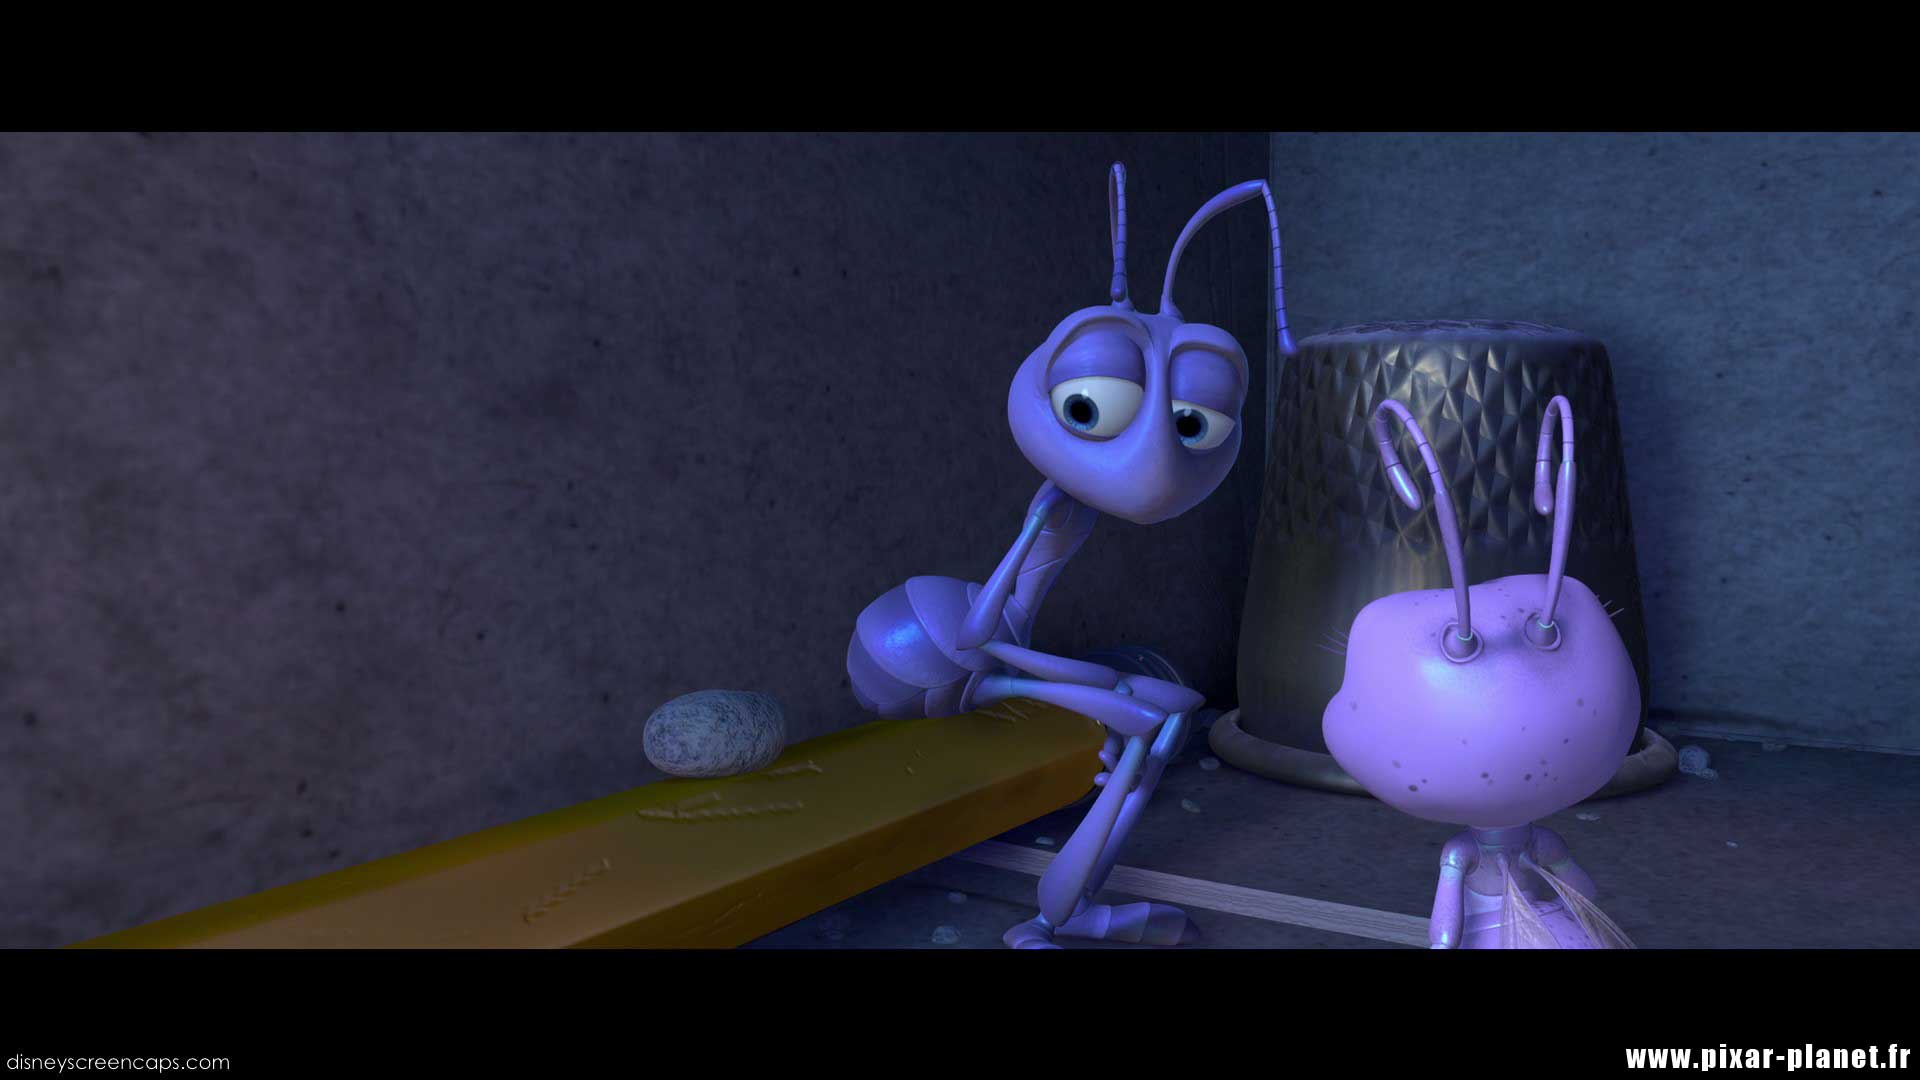 Pixar Planet Disney 1001 pattes bug life